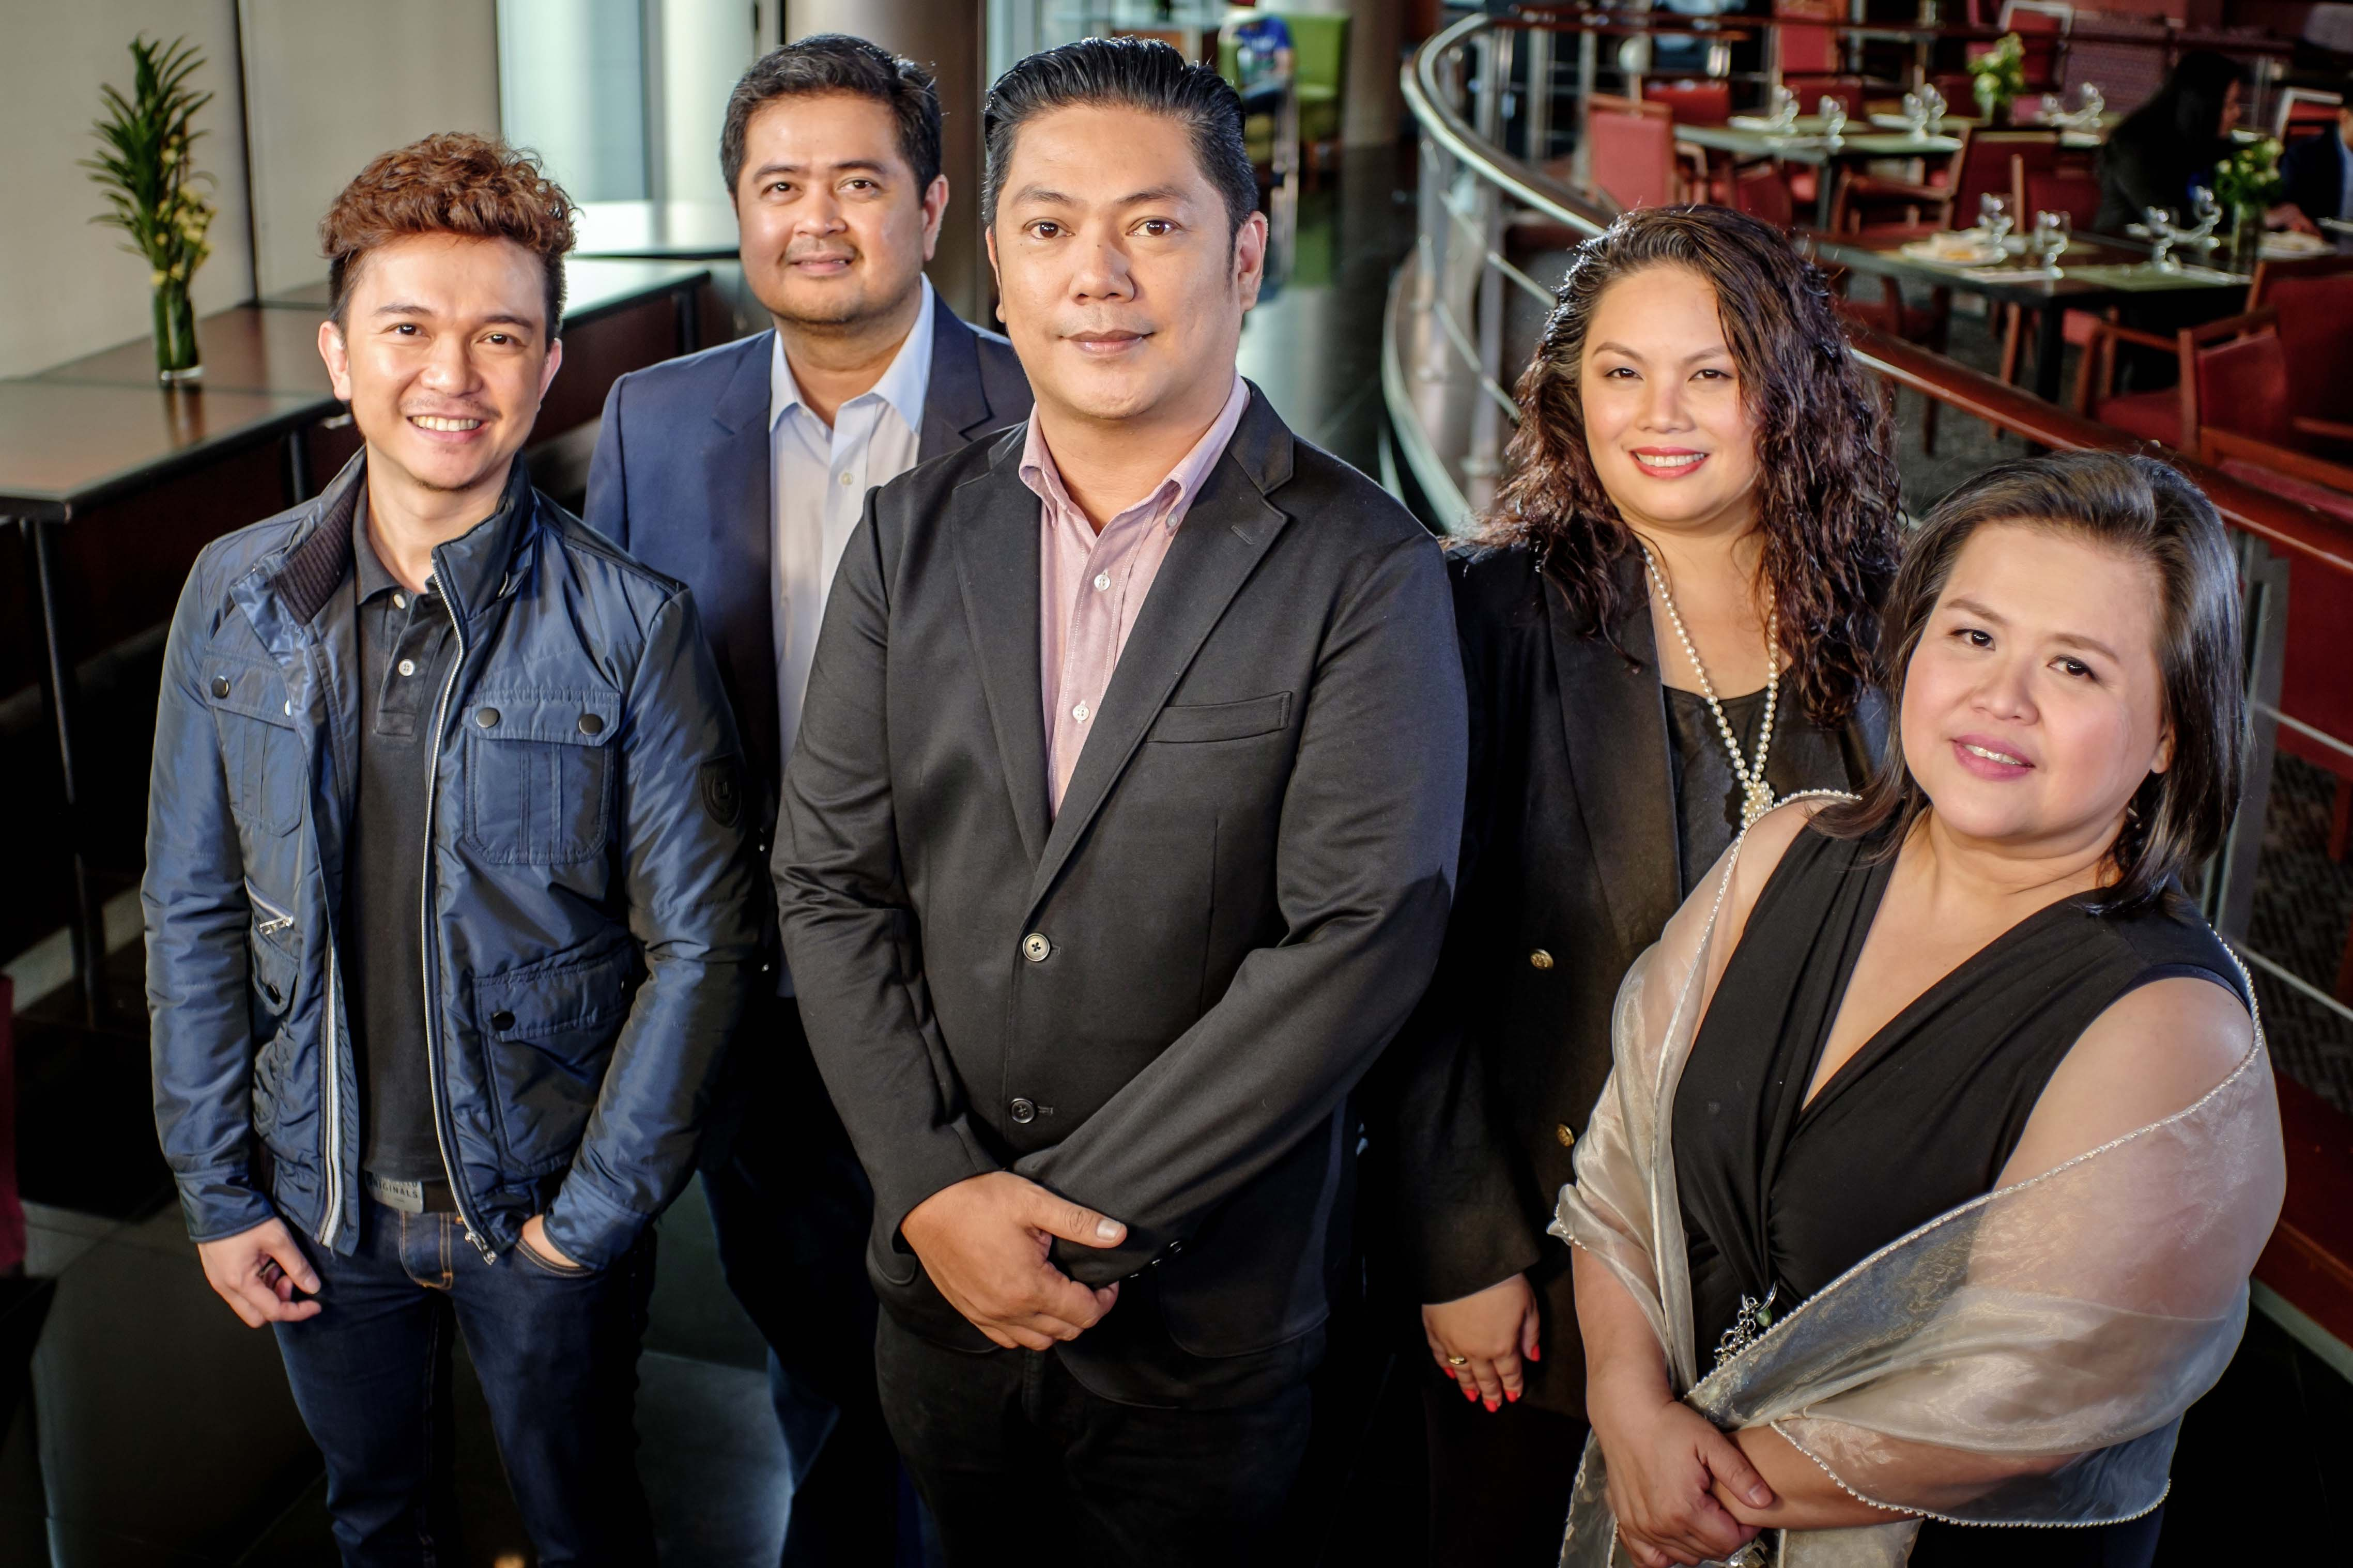 Star Music head Roxy Liquigan (center) with Jonathan Manalo, Mars Ocampo, Thellie Palanisamy and Marivic Benedicto